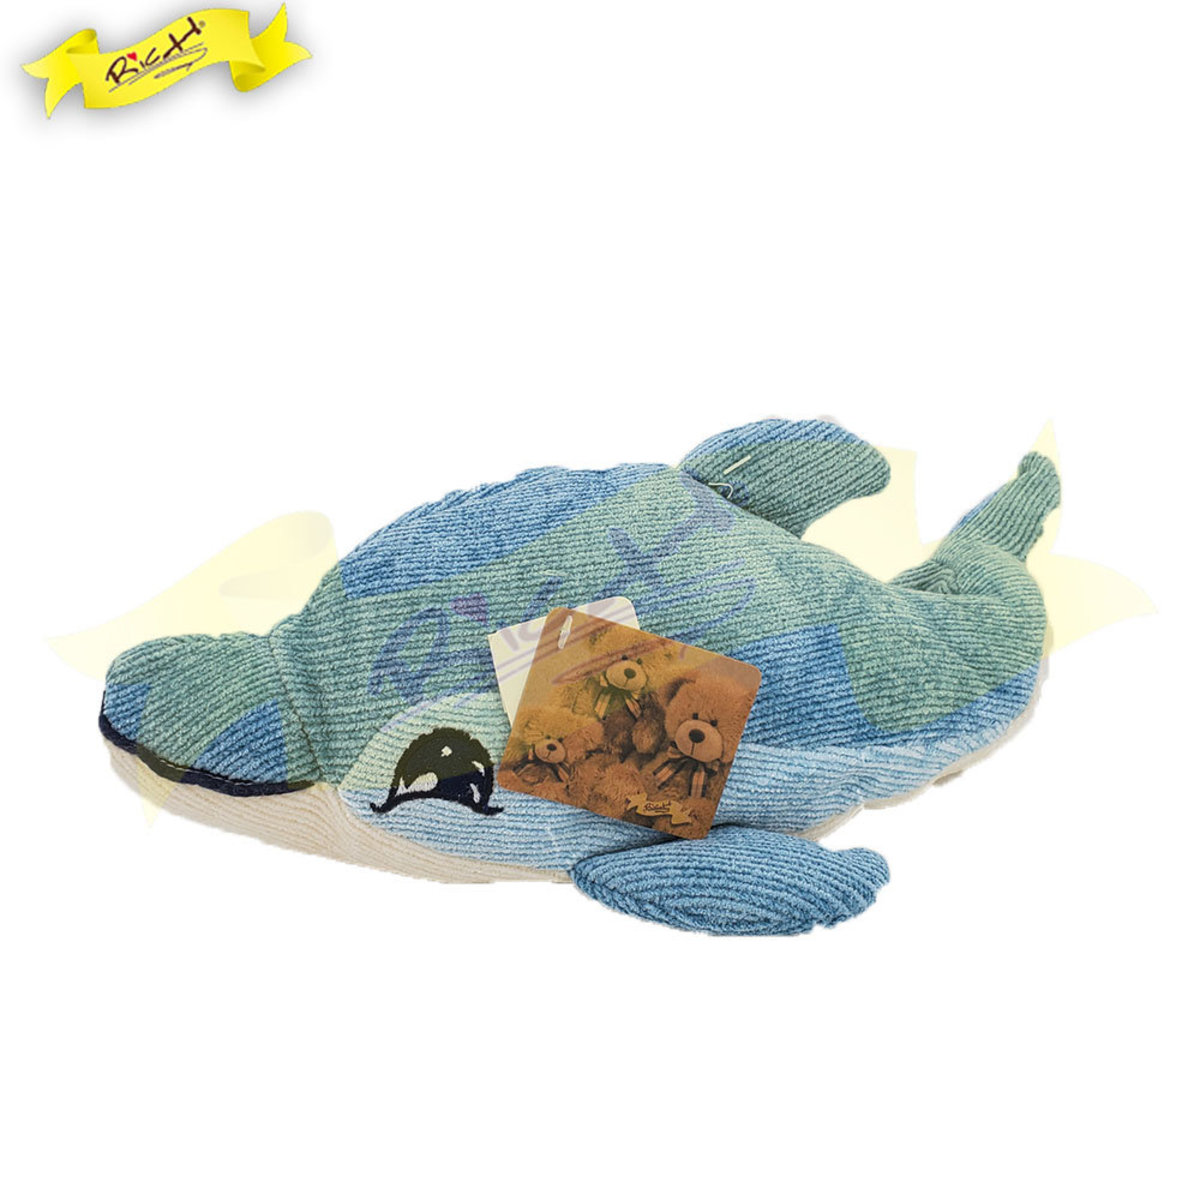 Chenille Knitted Dolphin Cushion (38cm) - 3F348